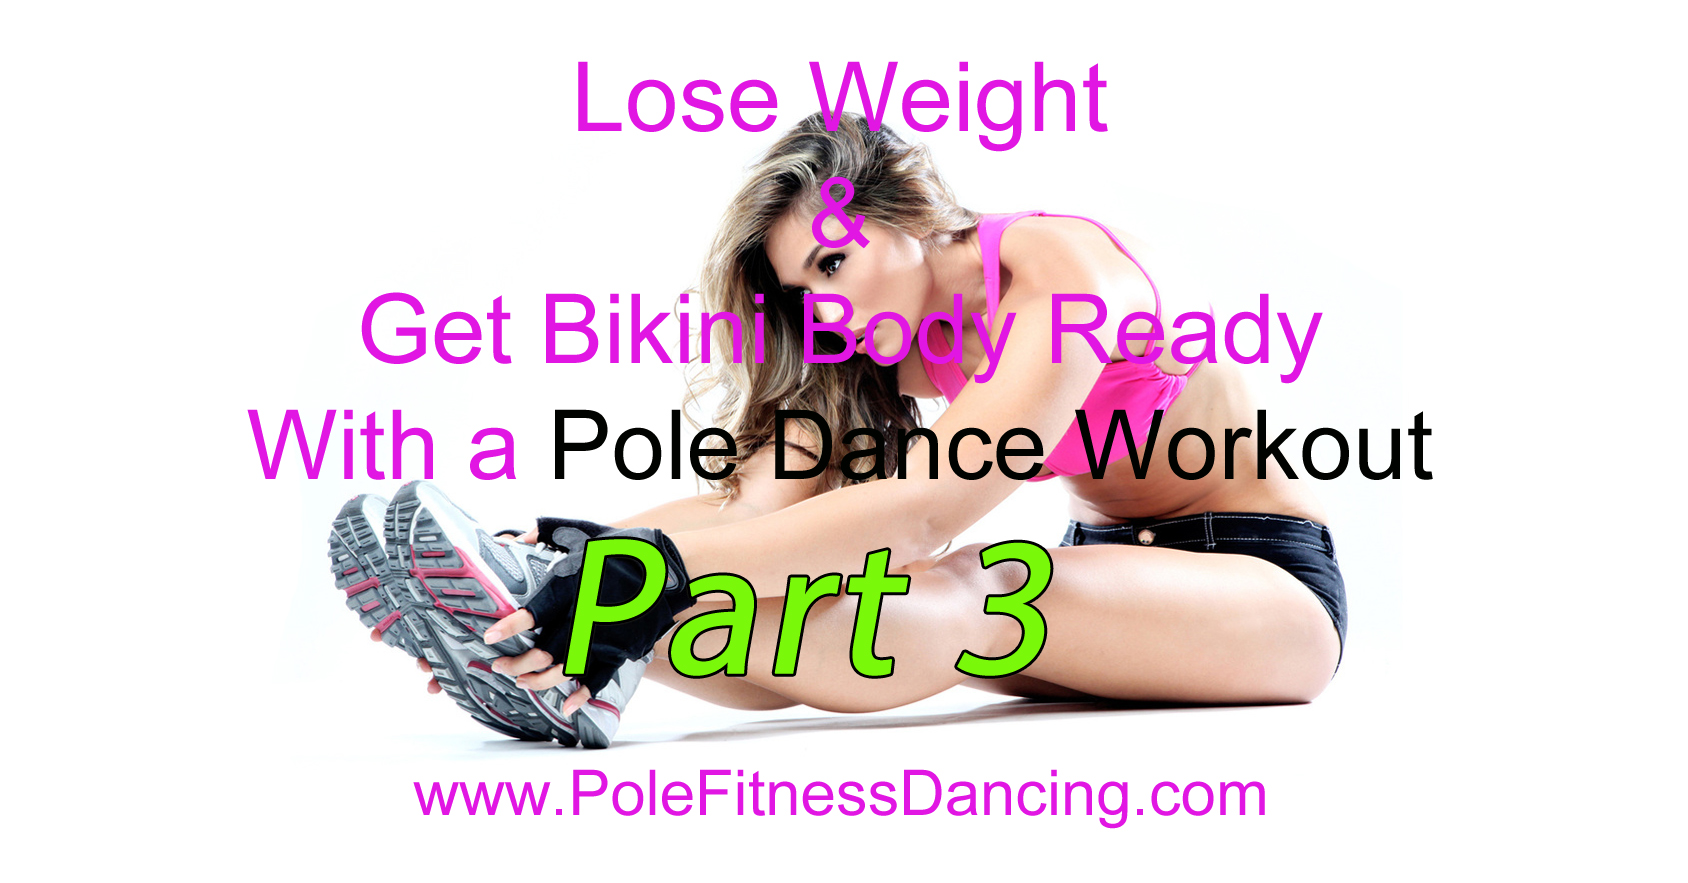 Avoiding Negative Motivation To Lose Weight In A Pole Dance Workout At Home